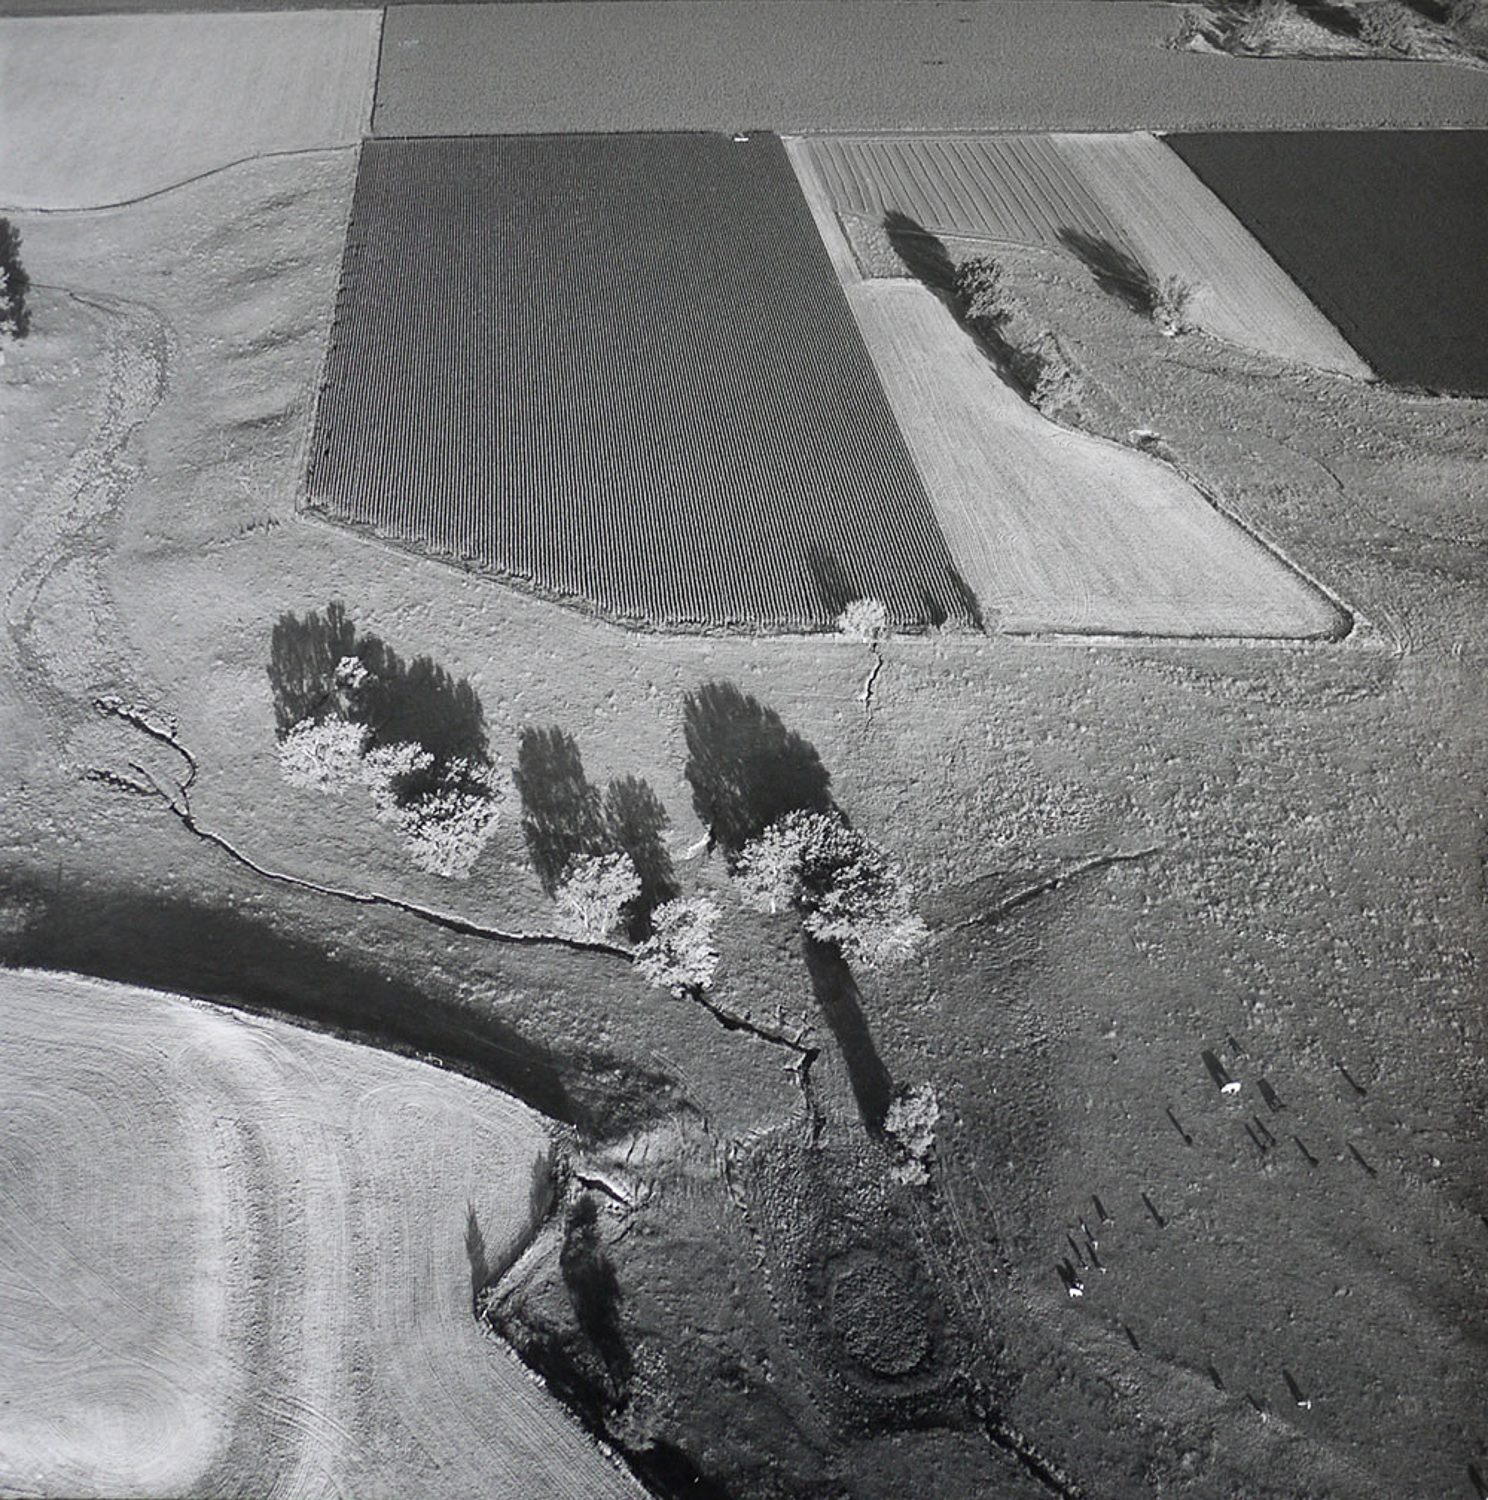 PASTURE_AND_CULTIVATION_AUGUST_23_1990.jpg